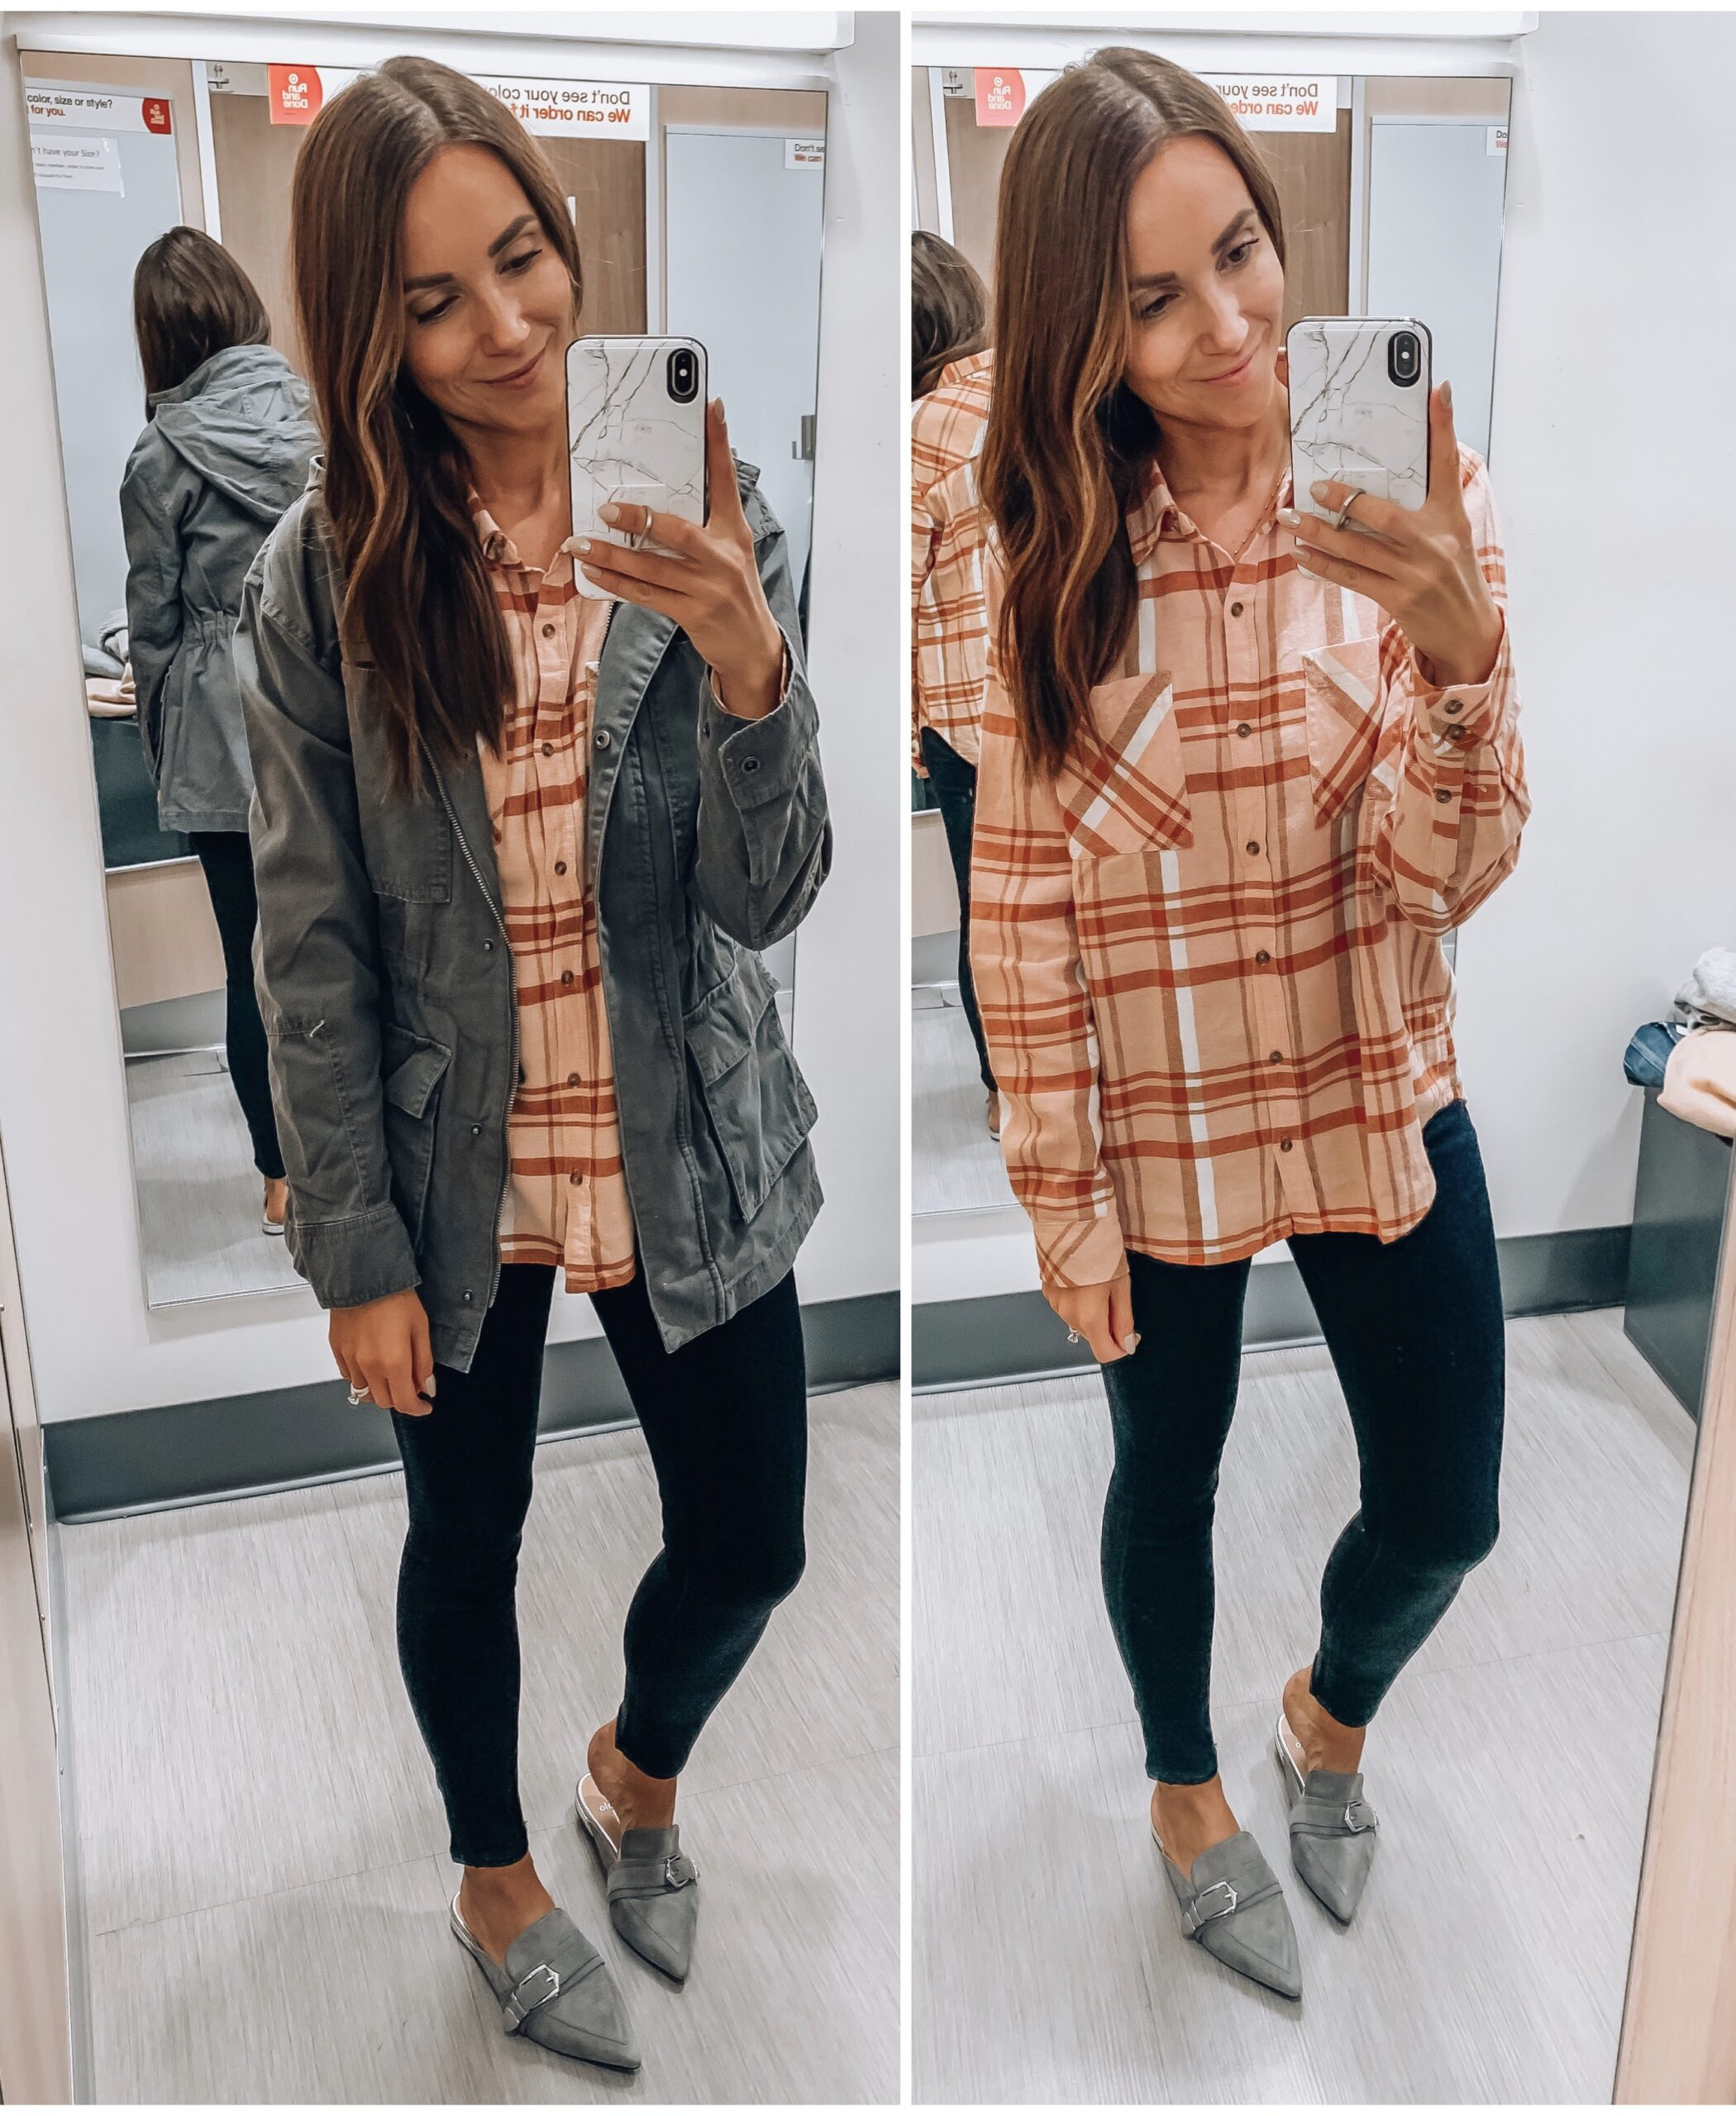 FLANNEL SHIRT WITH GREEN UTILITY JACKEY, FALL OUTFIT IDEAS, APPLE PICKING OUTFIT